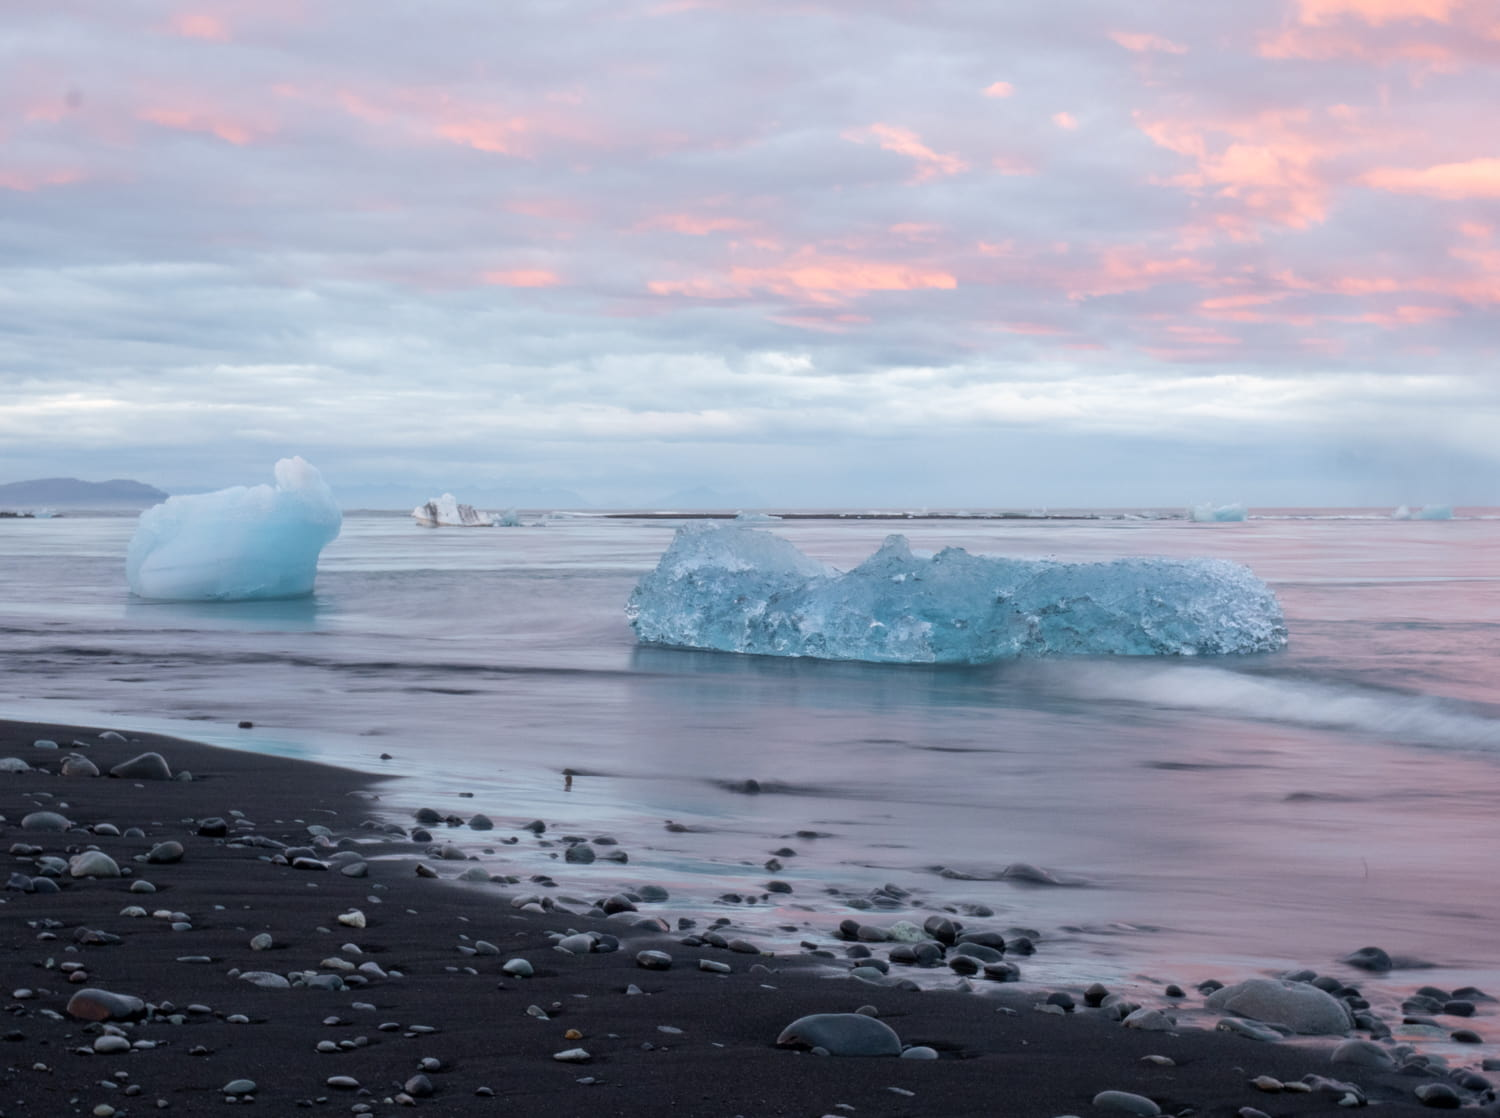 ice on diamond beach in Iceland with pink sky